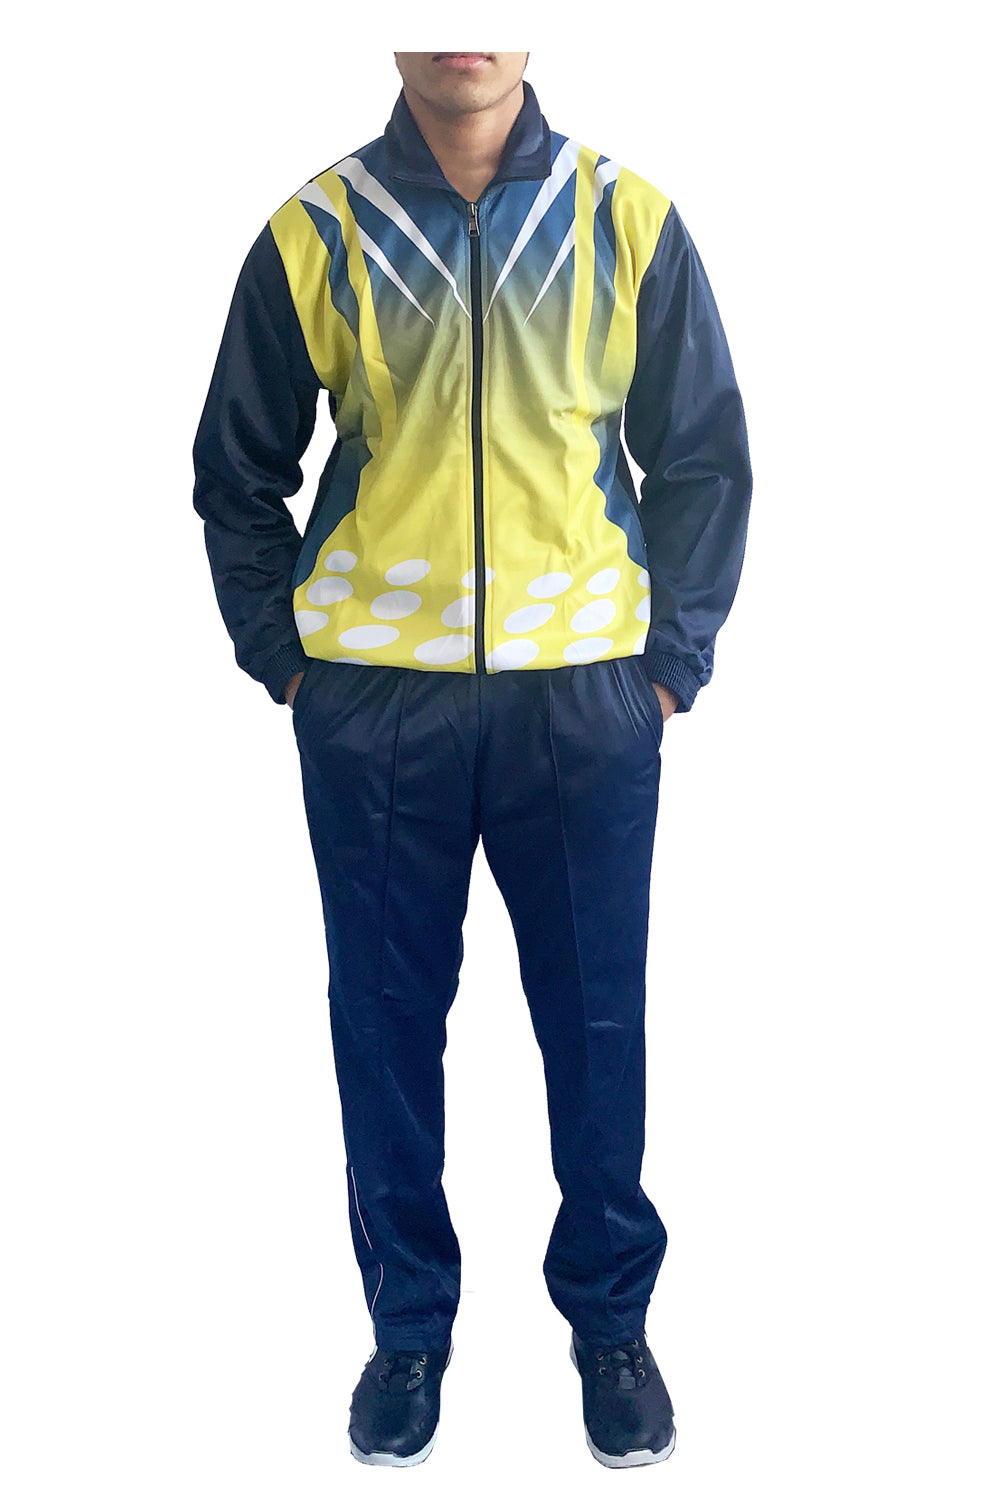 Sublimation Regular Fit Super Poly Men's Tracksuit for Sports | Training | Gym | Winterwear (Yellow Design) - Bestfit Sportswear